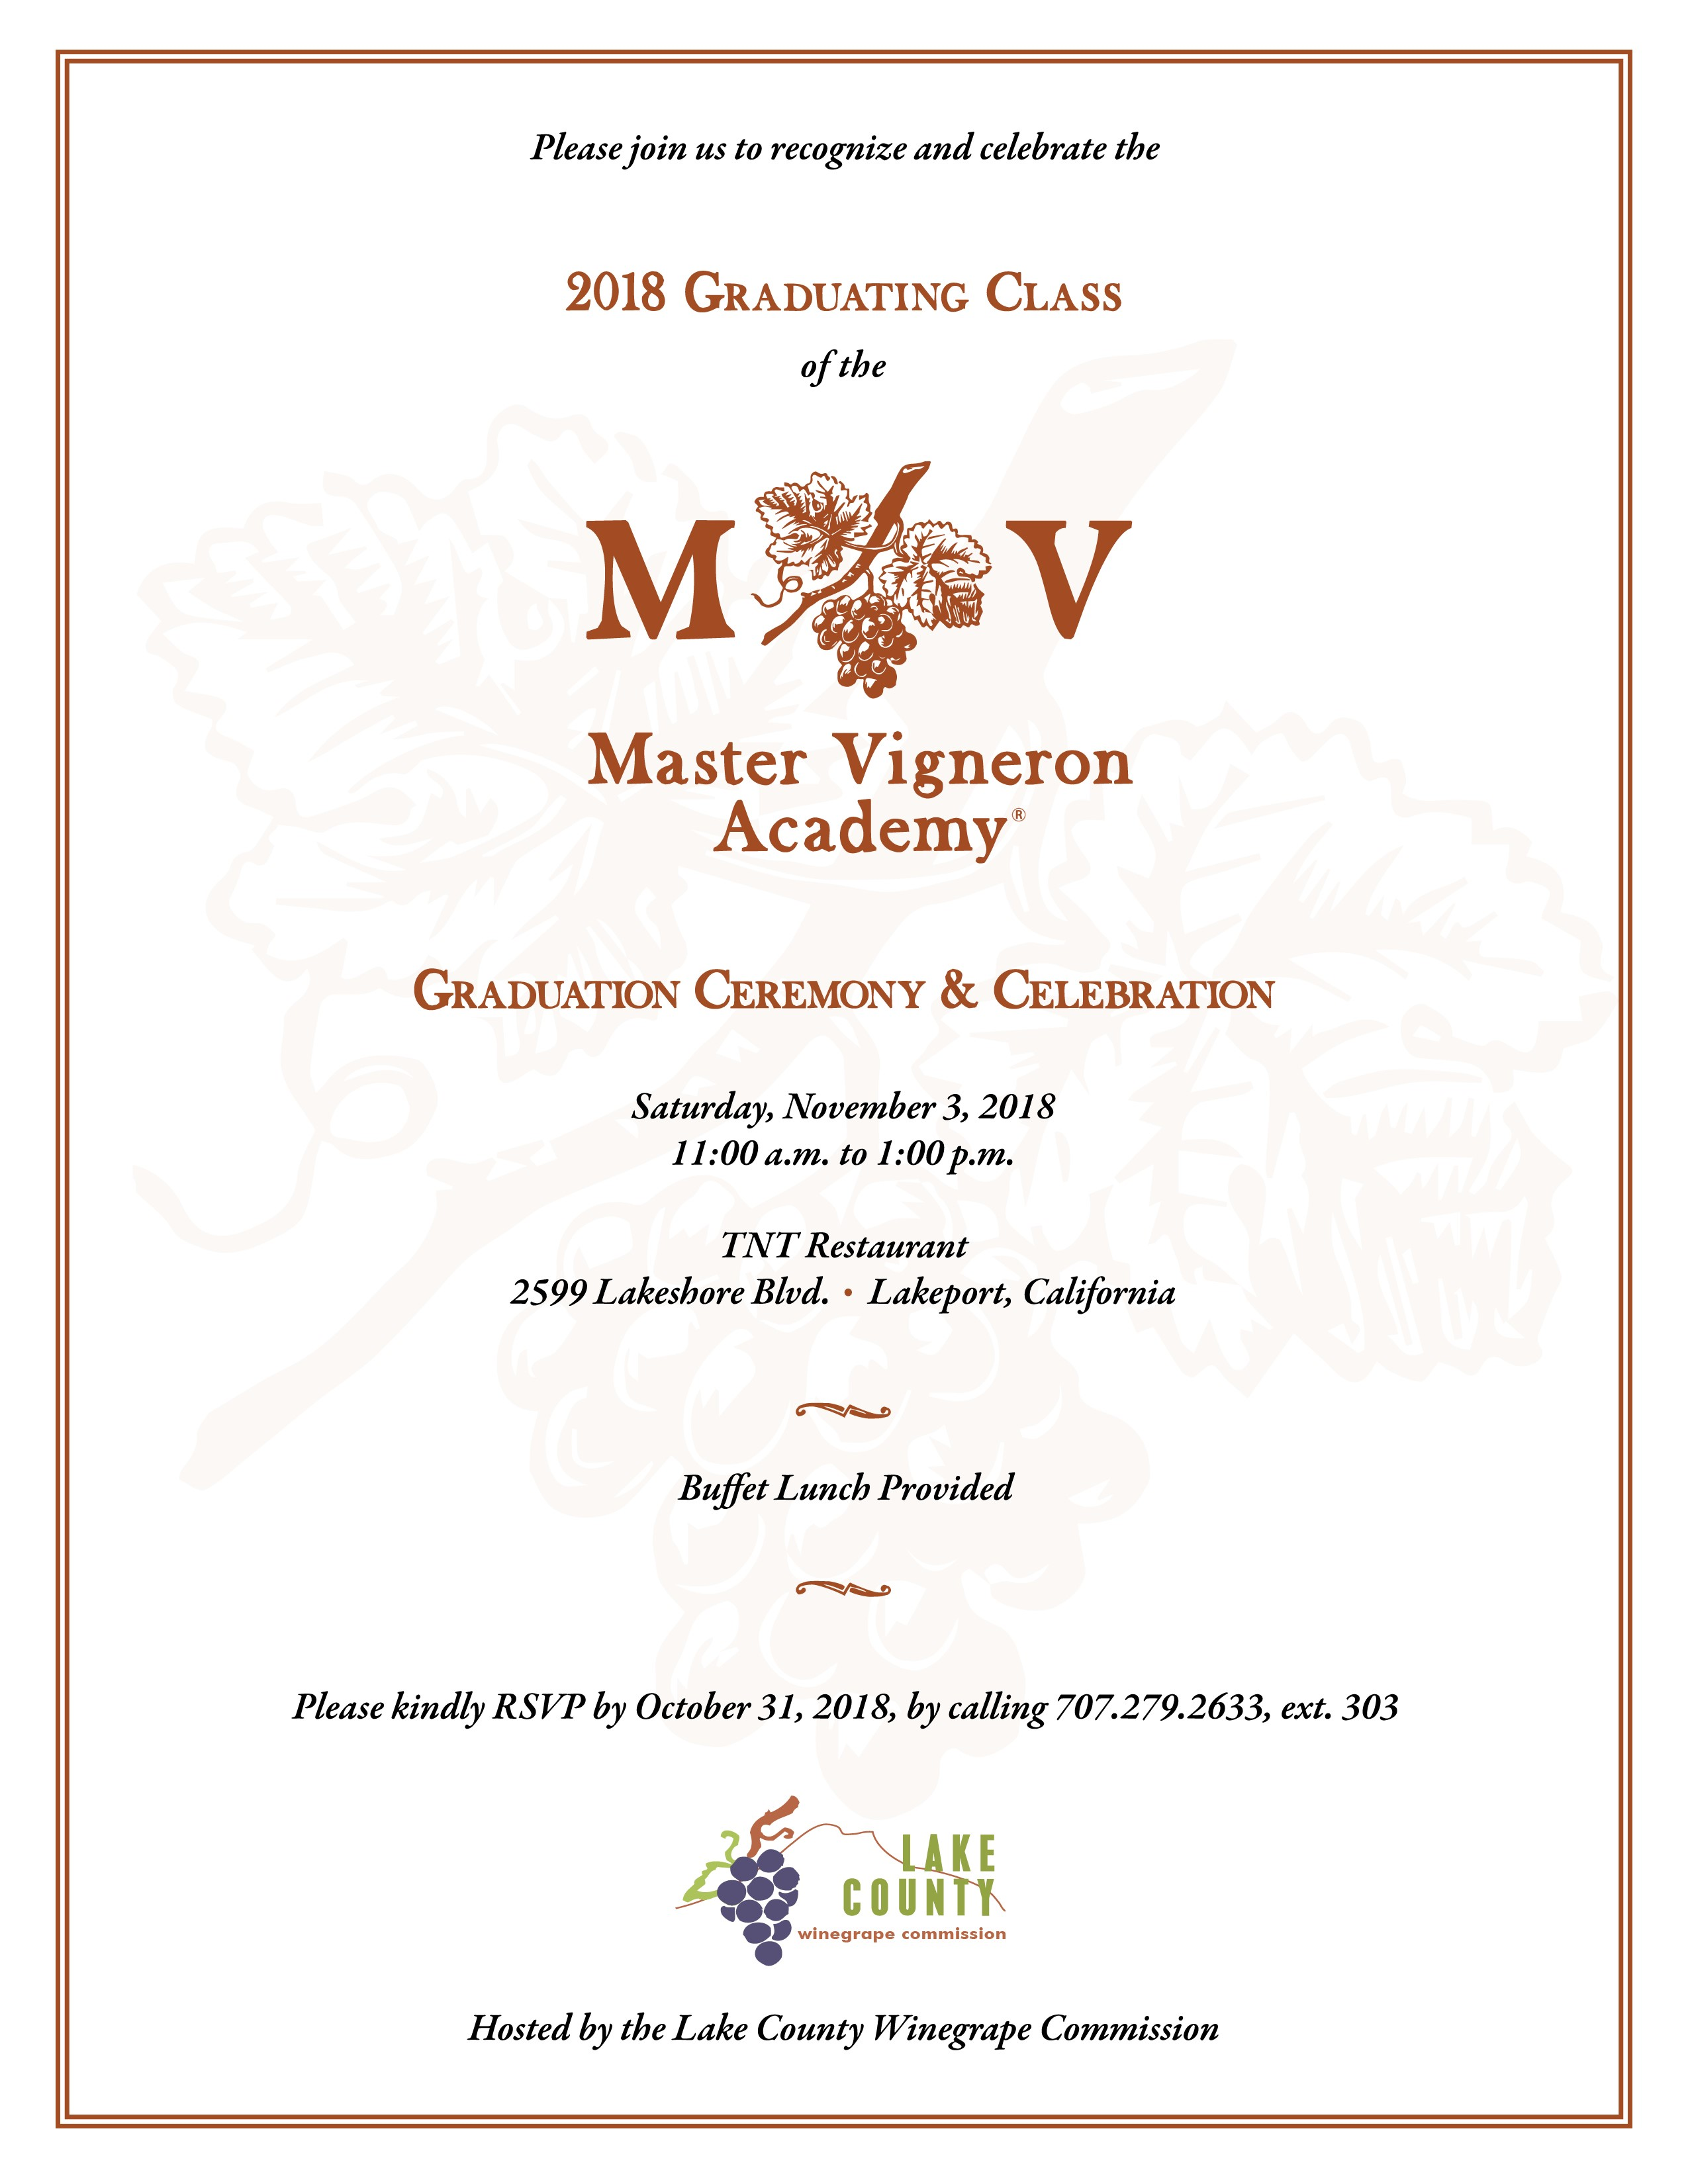 Master Vigneron Academy Graduation - Ceremony & Celebration